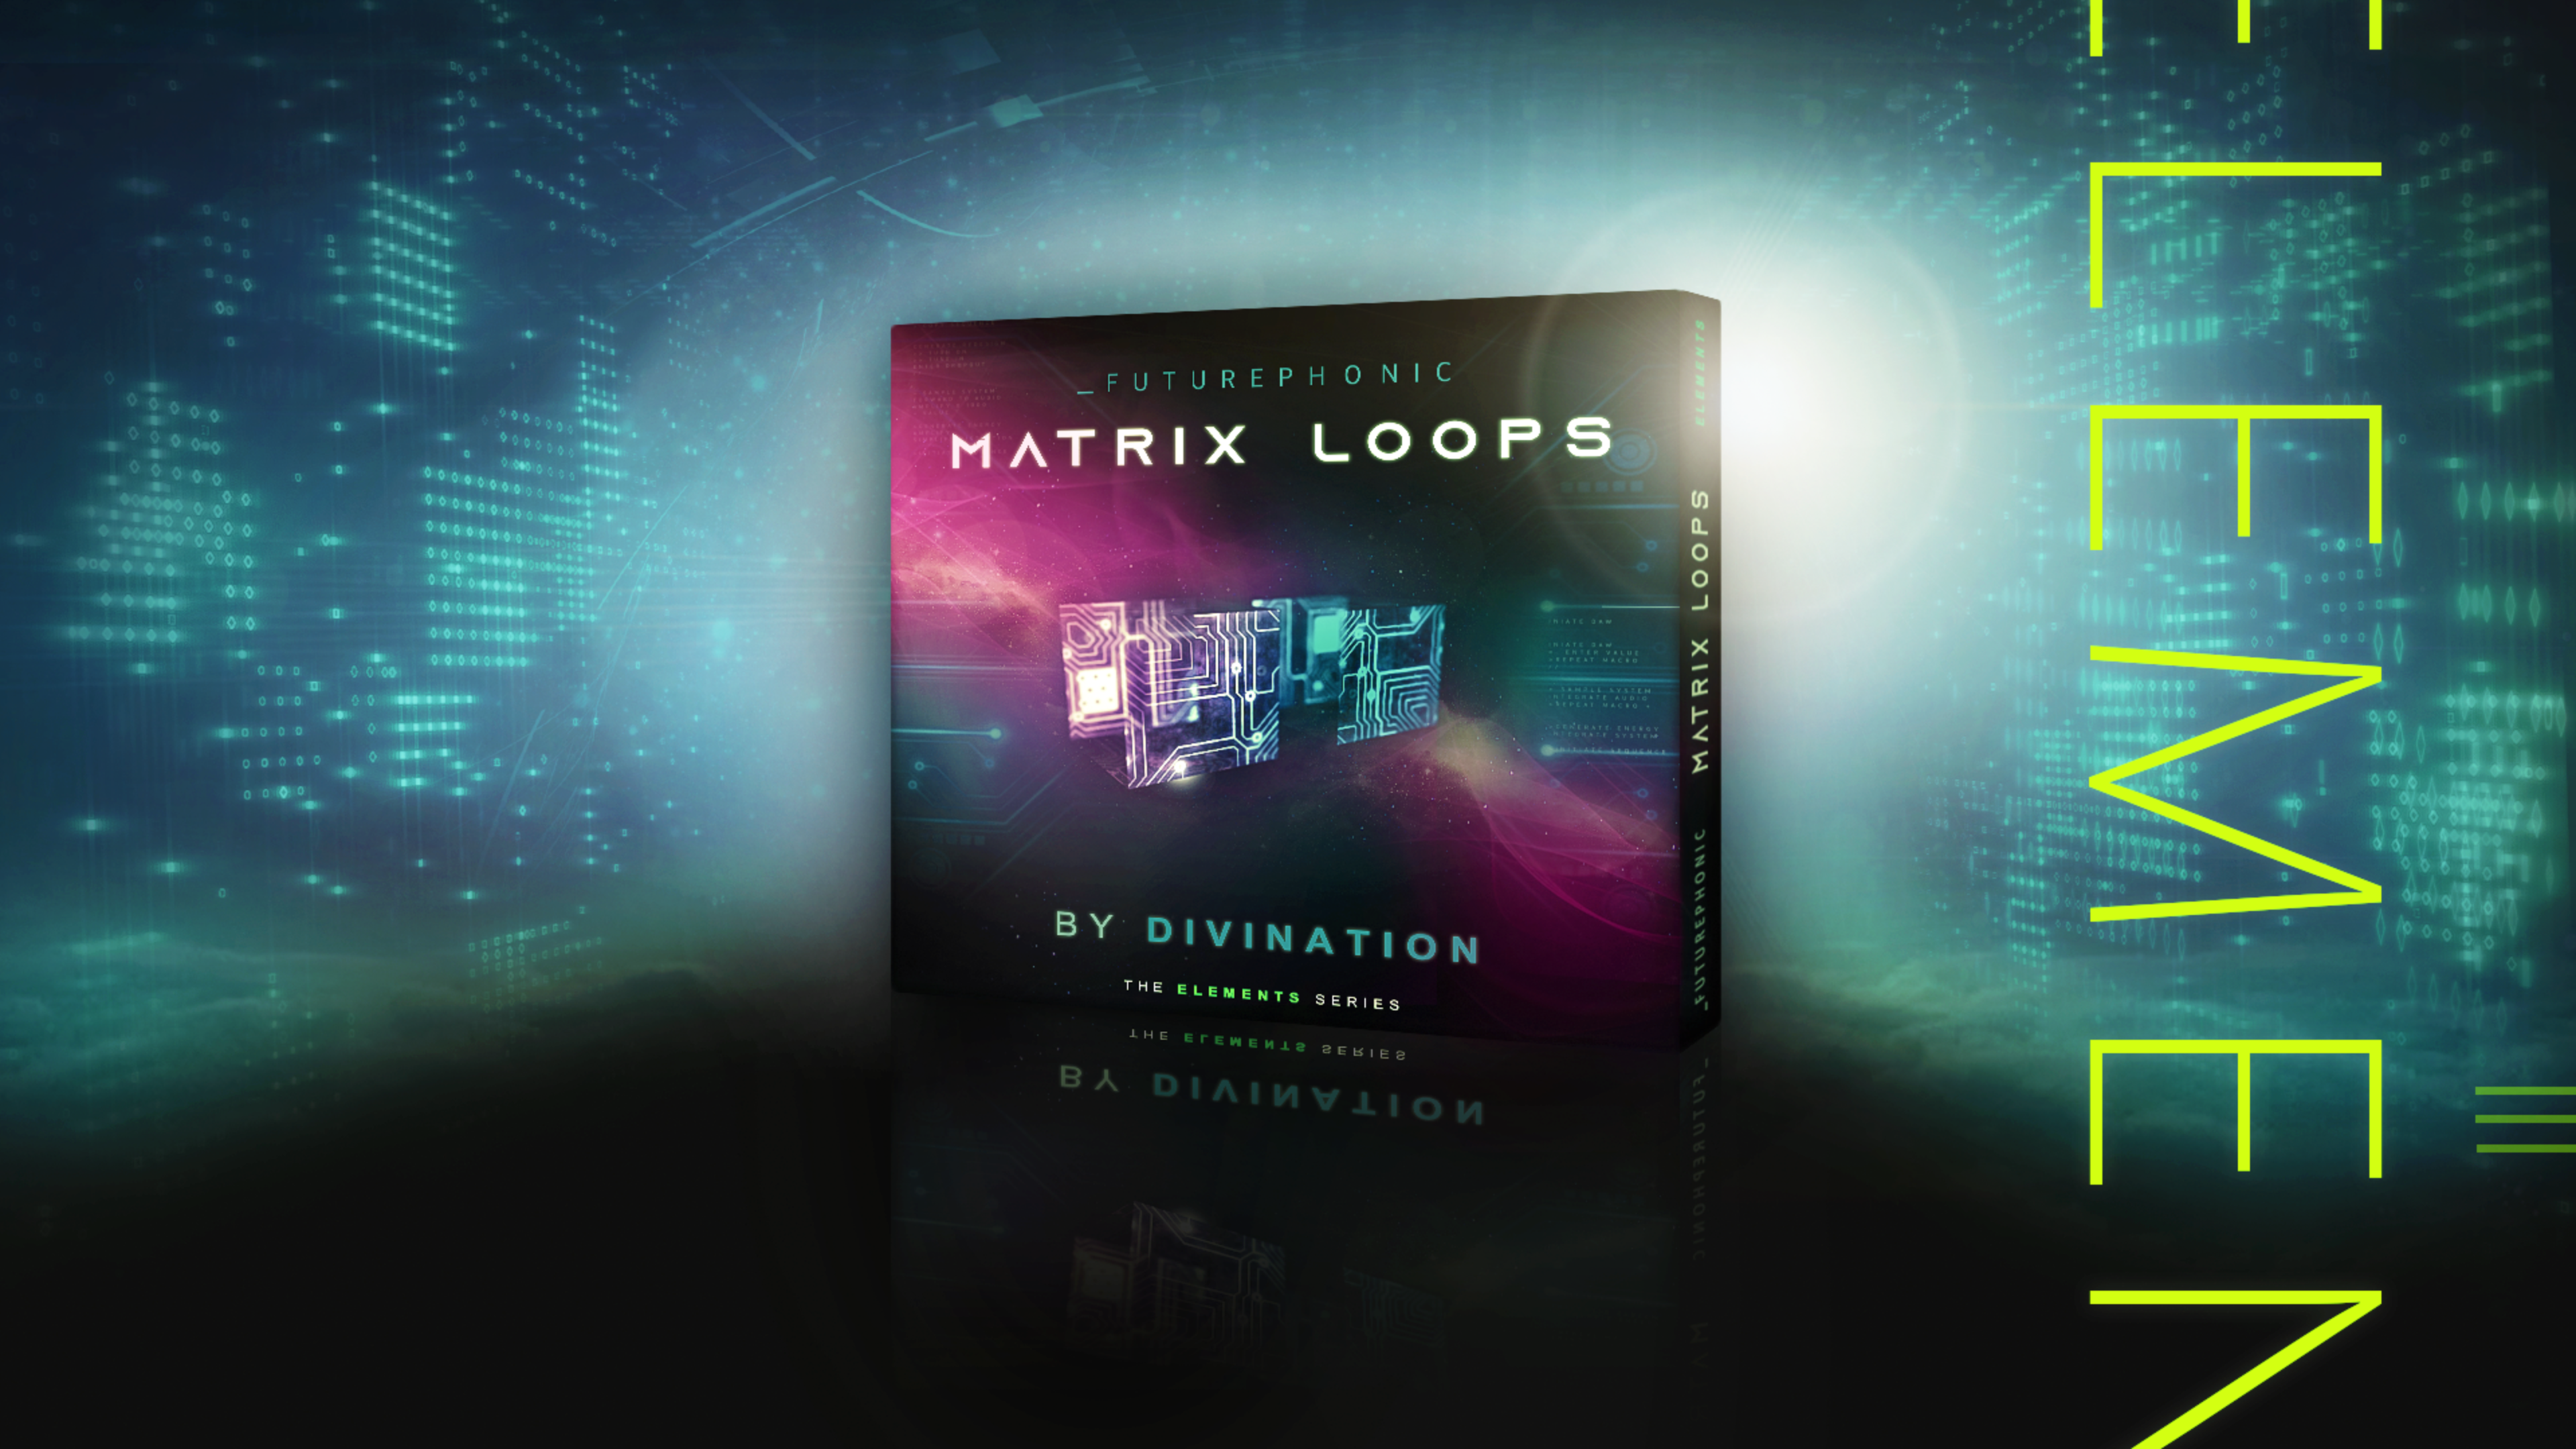 Matrix Loops by Divination